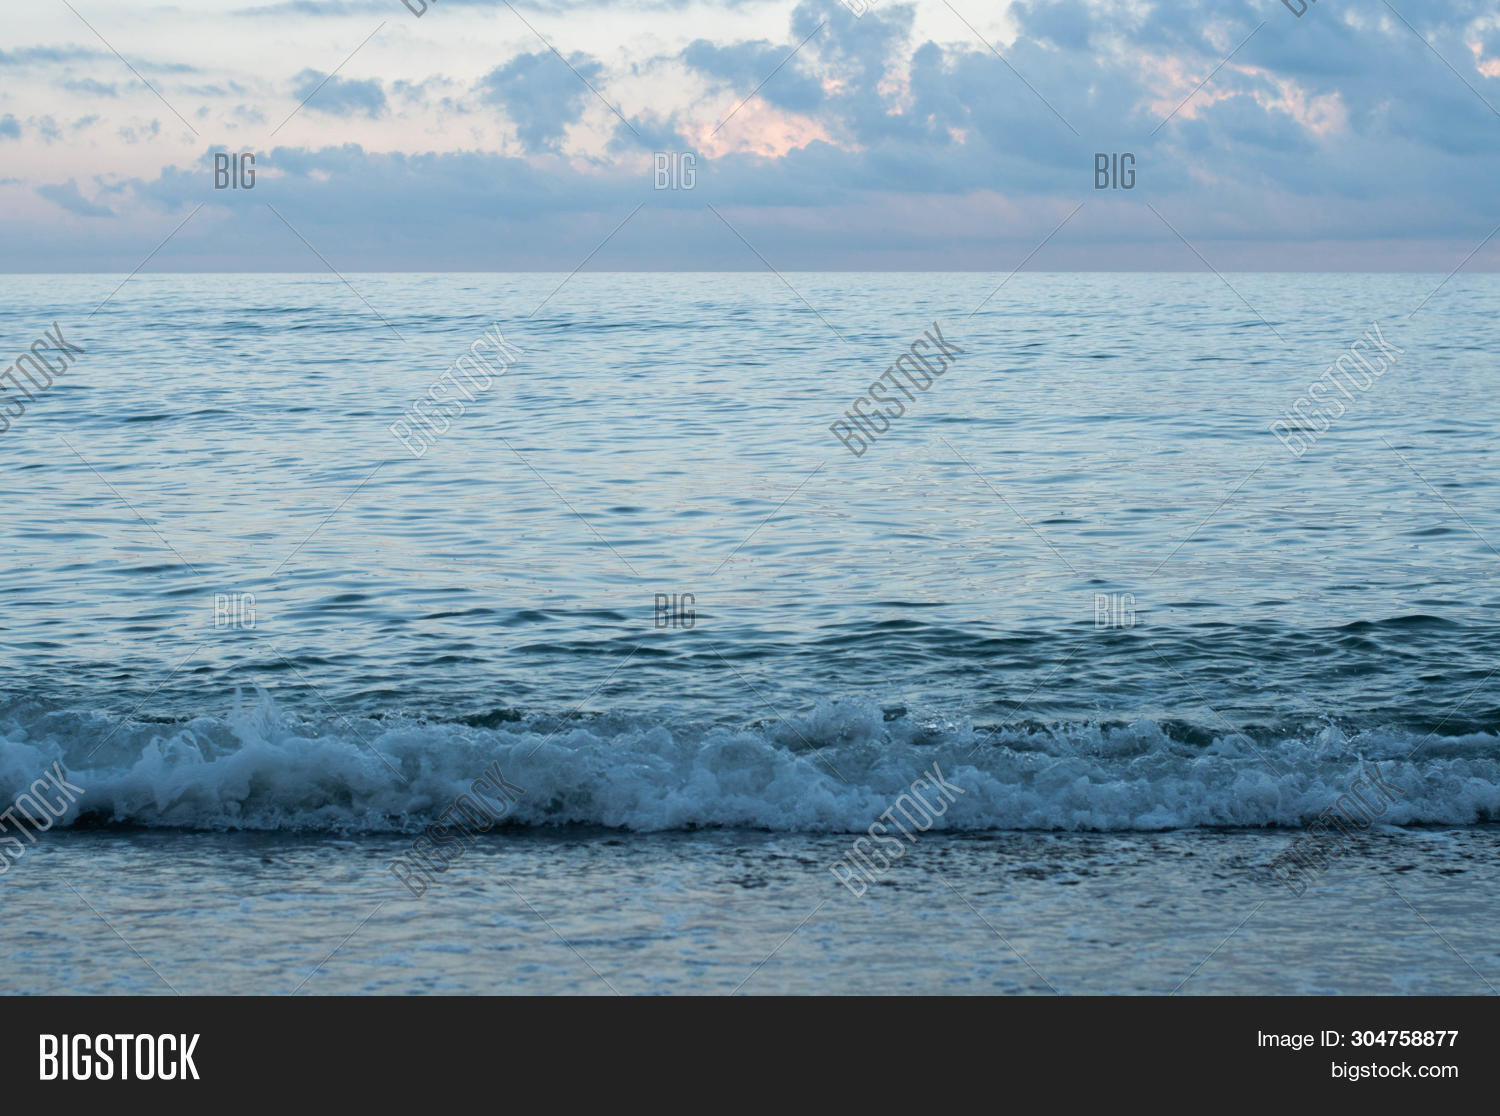 Summer Dusk Coastline Image & Photo (Free Trial) | Bigstock